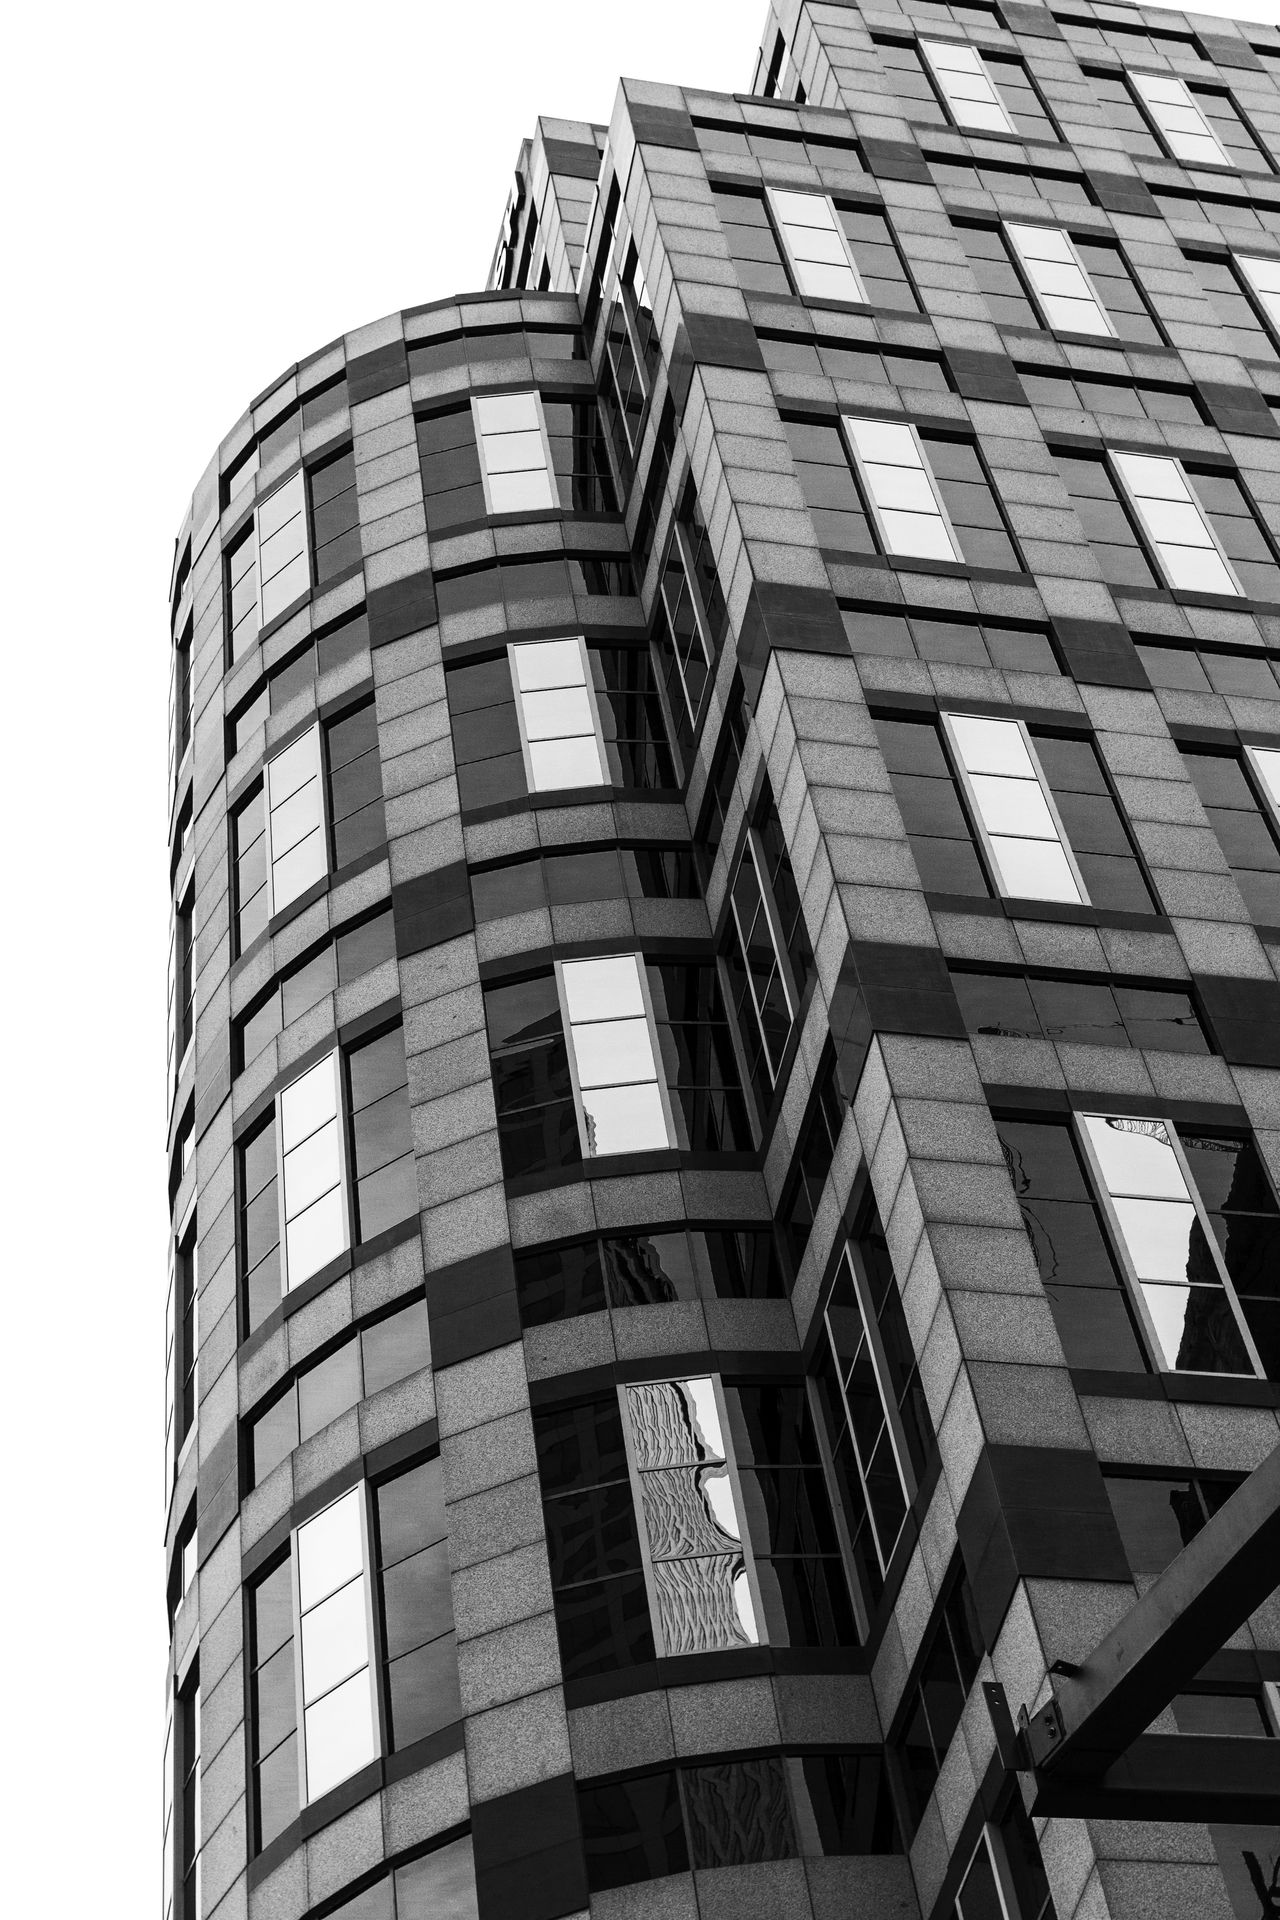 Architecture Blackandwhite Building Building Exterior Built Structure City Contrast Day Low Angle View Modern Monochrome No People Outdoors Sky Window